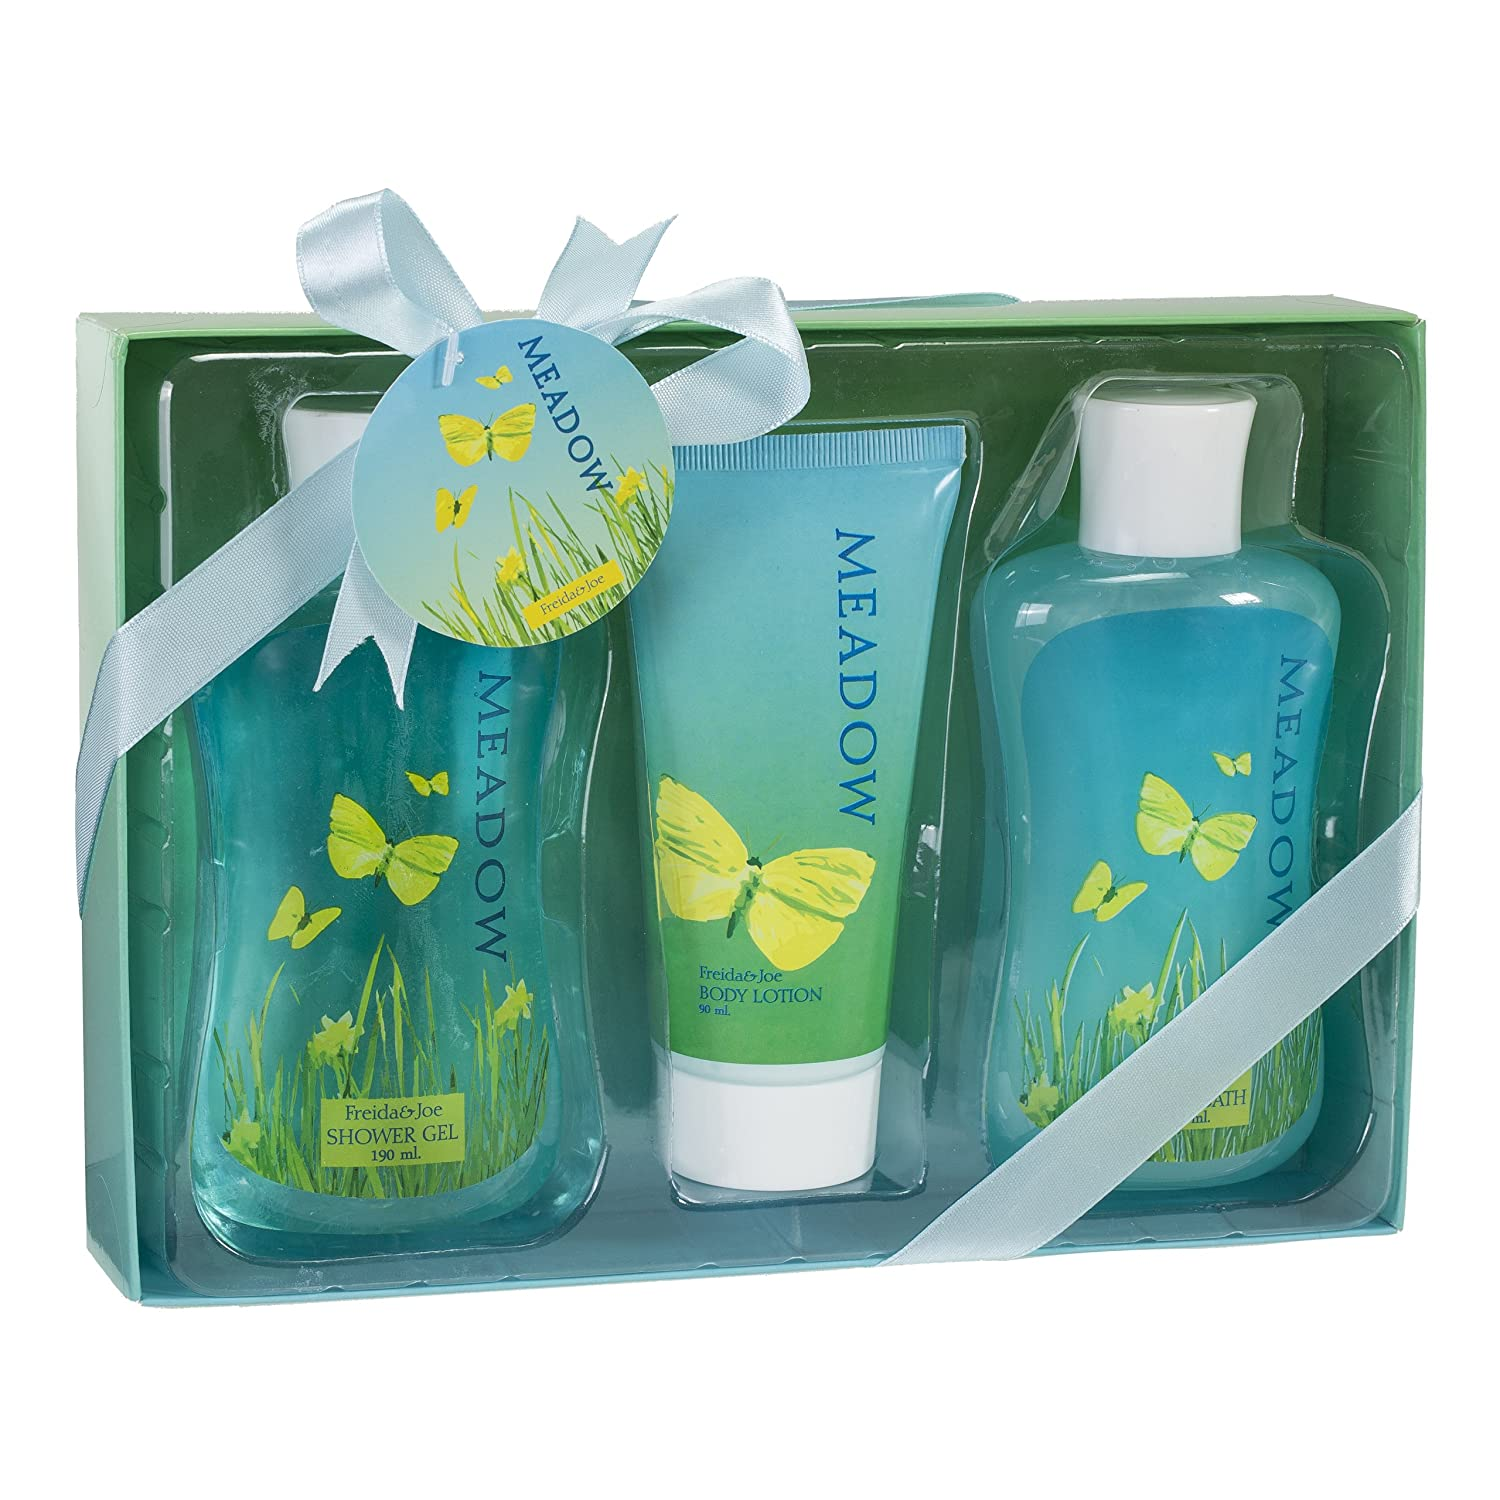 Bath, Body, and Spa Gift Set for Women, in Fresh Meadow Fragrance, Includes a Shower Gel, Bubble Bath, and Body Lotion, with Shea Butter and Vitamin E to Moisturize and Nourish Skin